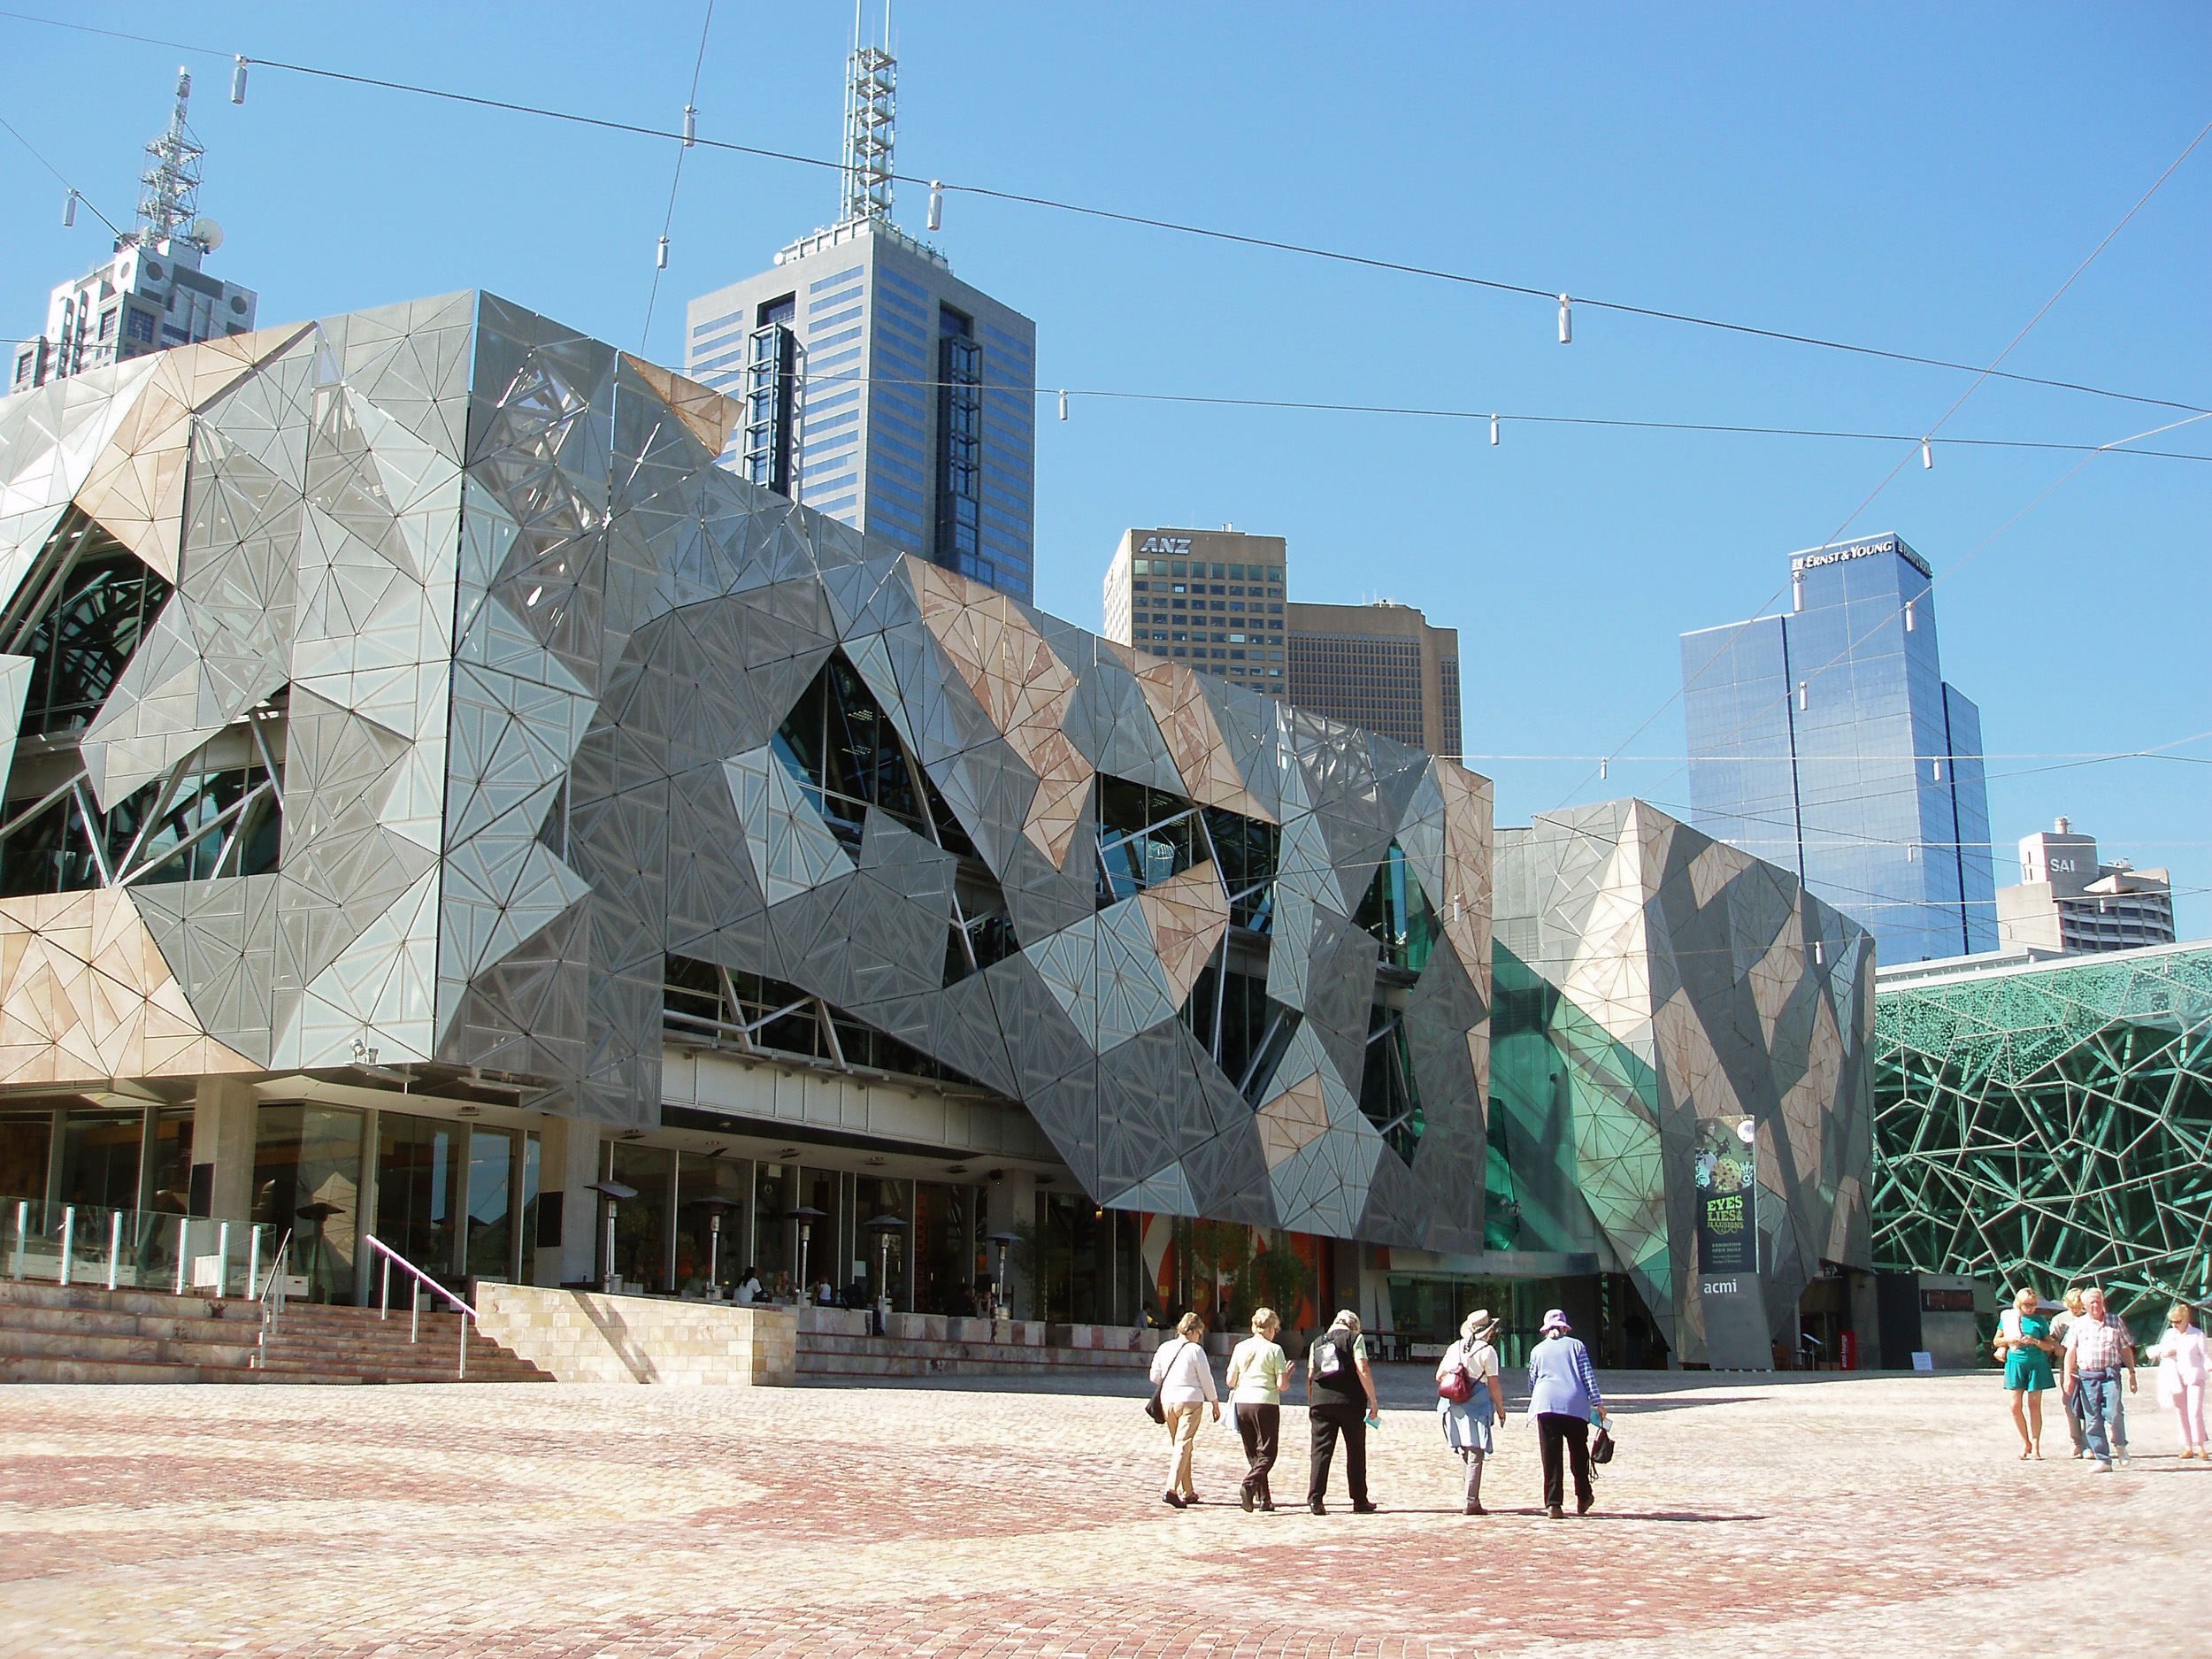 http://freeaussiestock.com/free/Victoria/Melbourne/slides/fed_square.htm